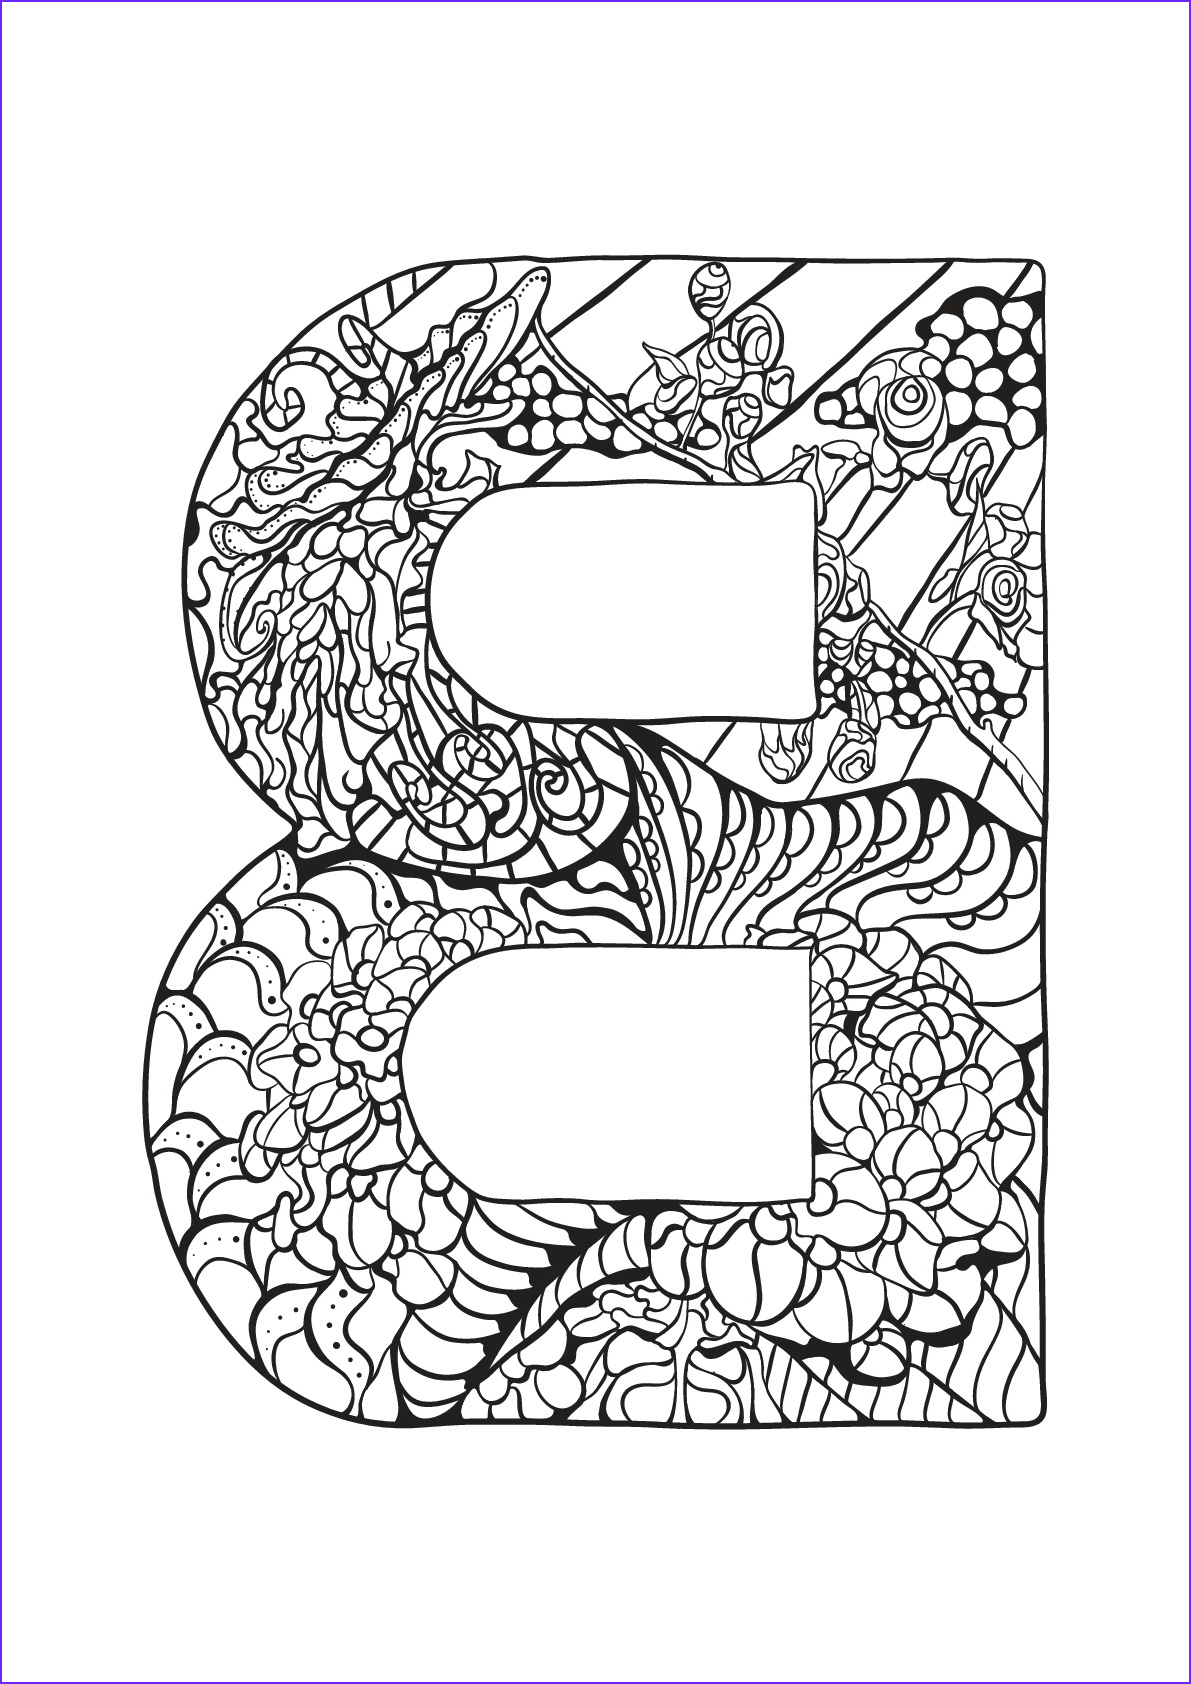 Letters for Coloring Inspirational Stock Alphabet to for Free B Alphabet Kids Coloring